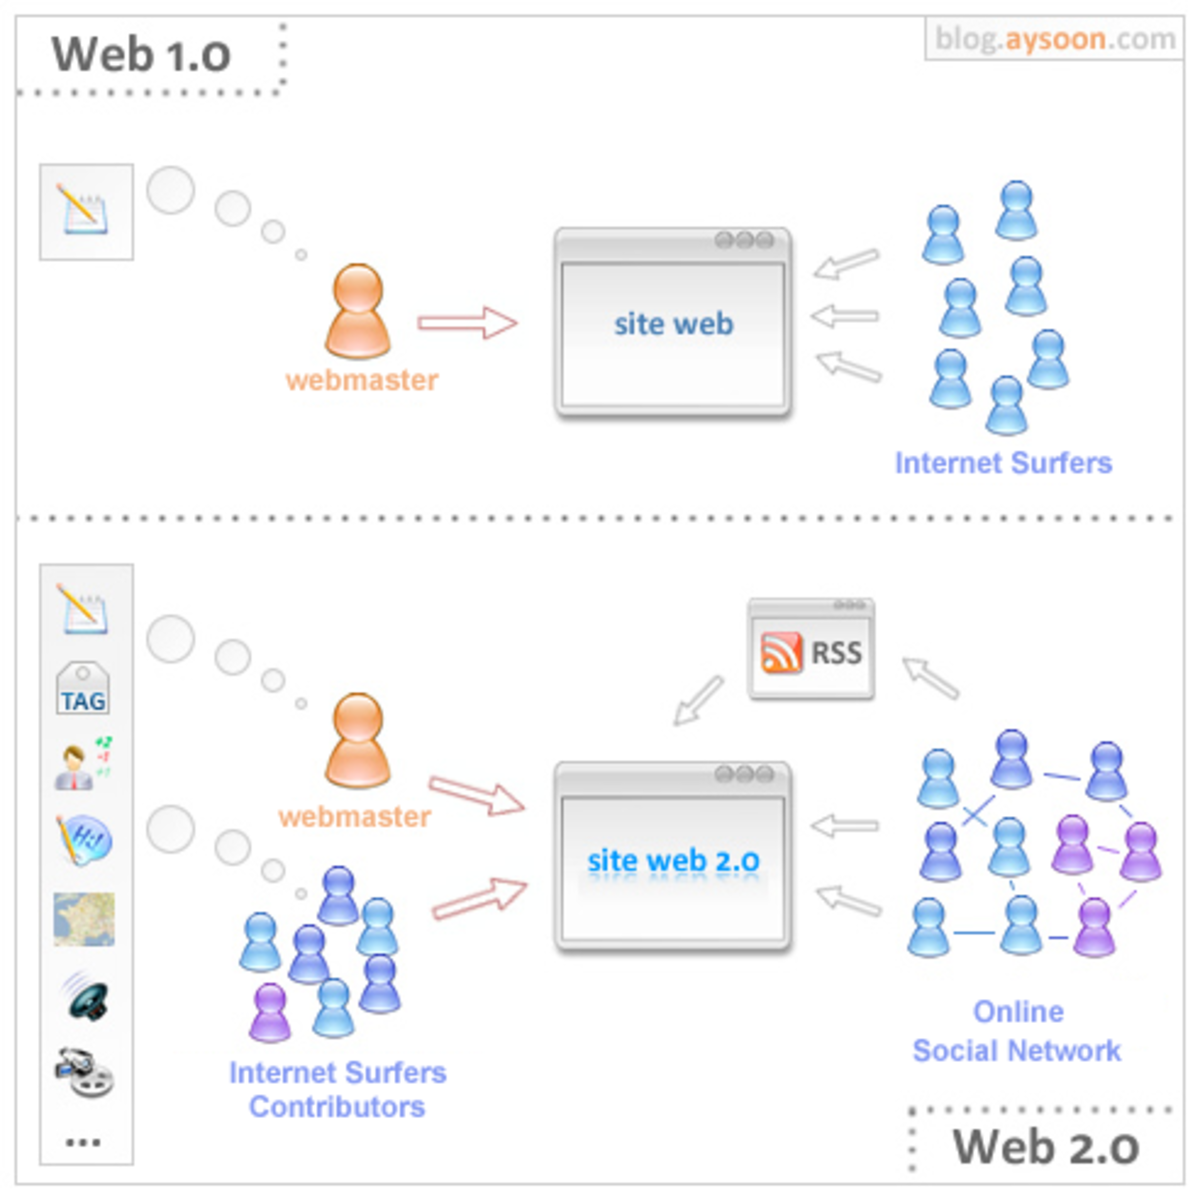 The Difference between Web 2.0 and Web 1.0